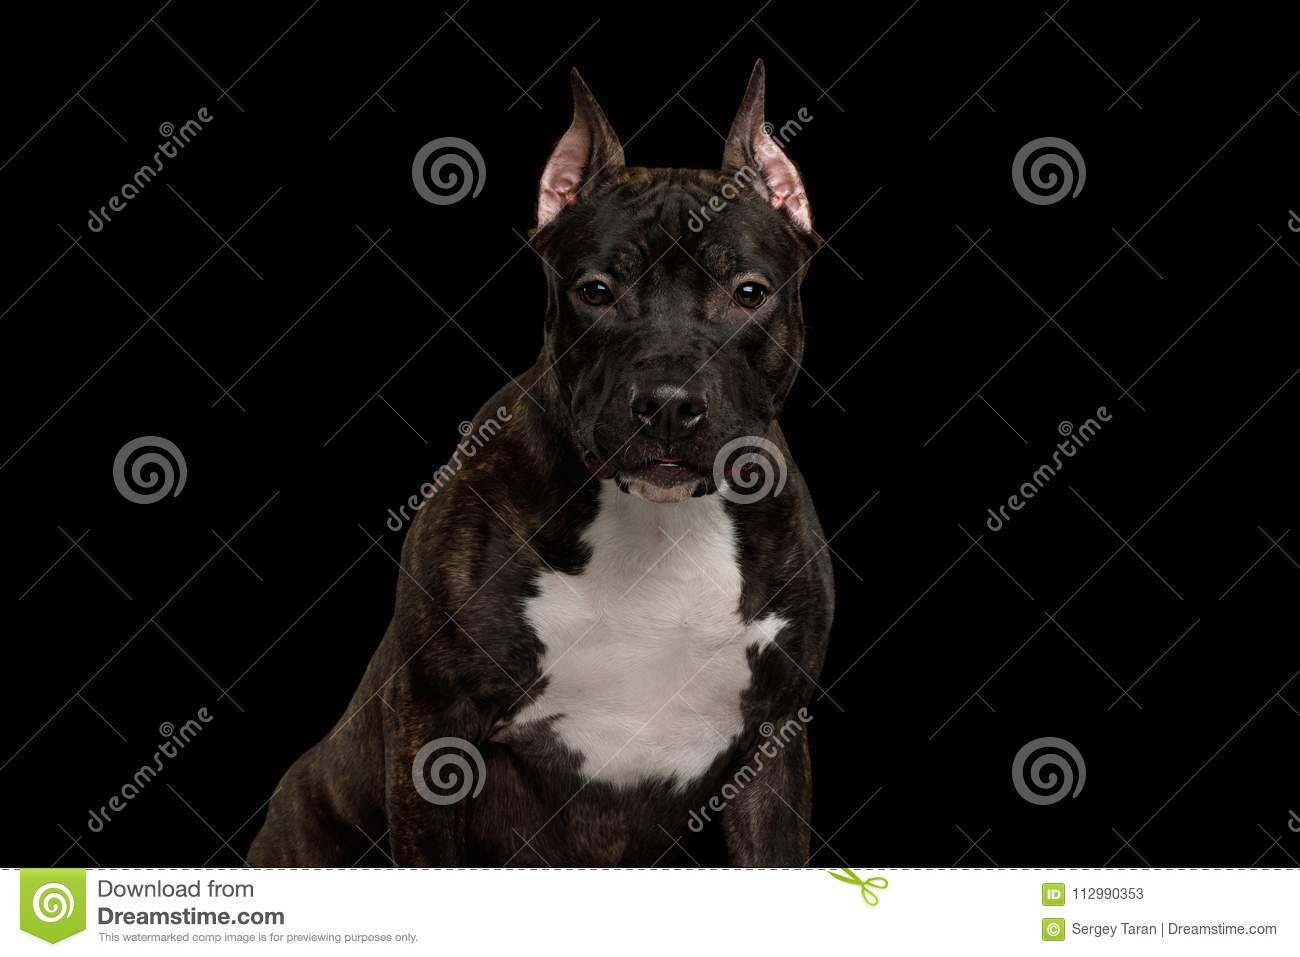 American Staffordshire Terrier Dog Isolated on Black Background